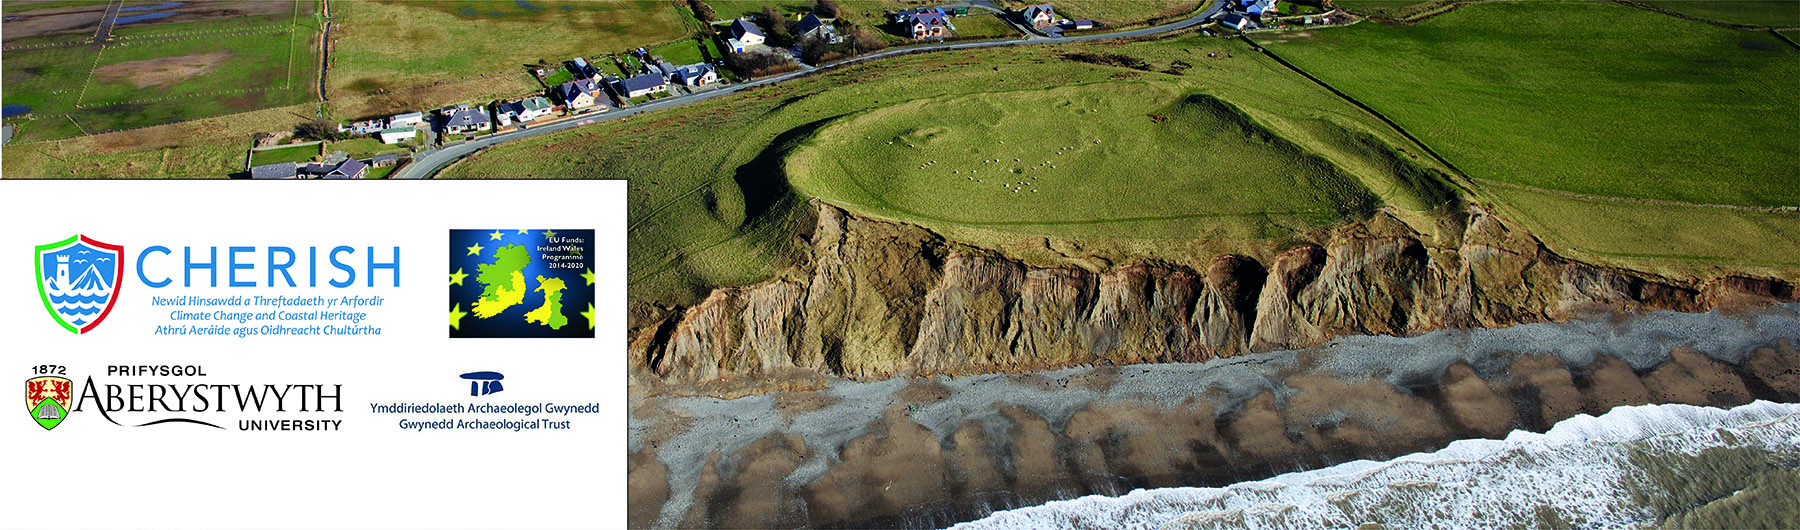 Darlith Nadolig y Comisiwn Brenhinol: A Story of Sand, Sea and Storms: Uncovering the Secrets of Dinas Dinlle Hillfort in Gwynedd - Prifysgol Bangor